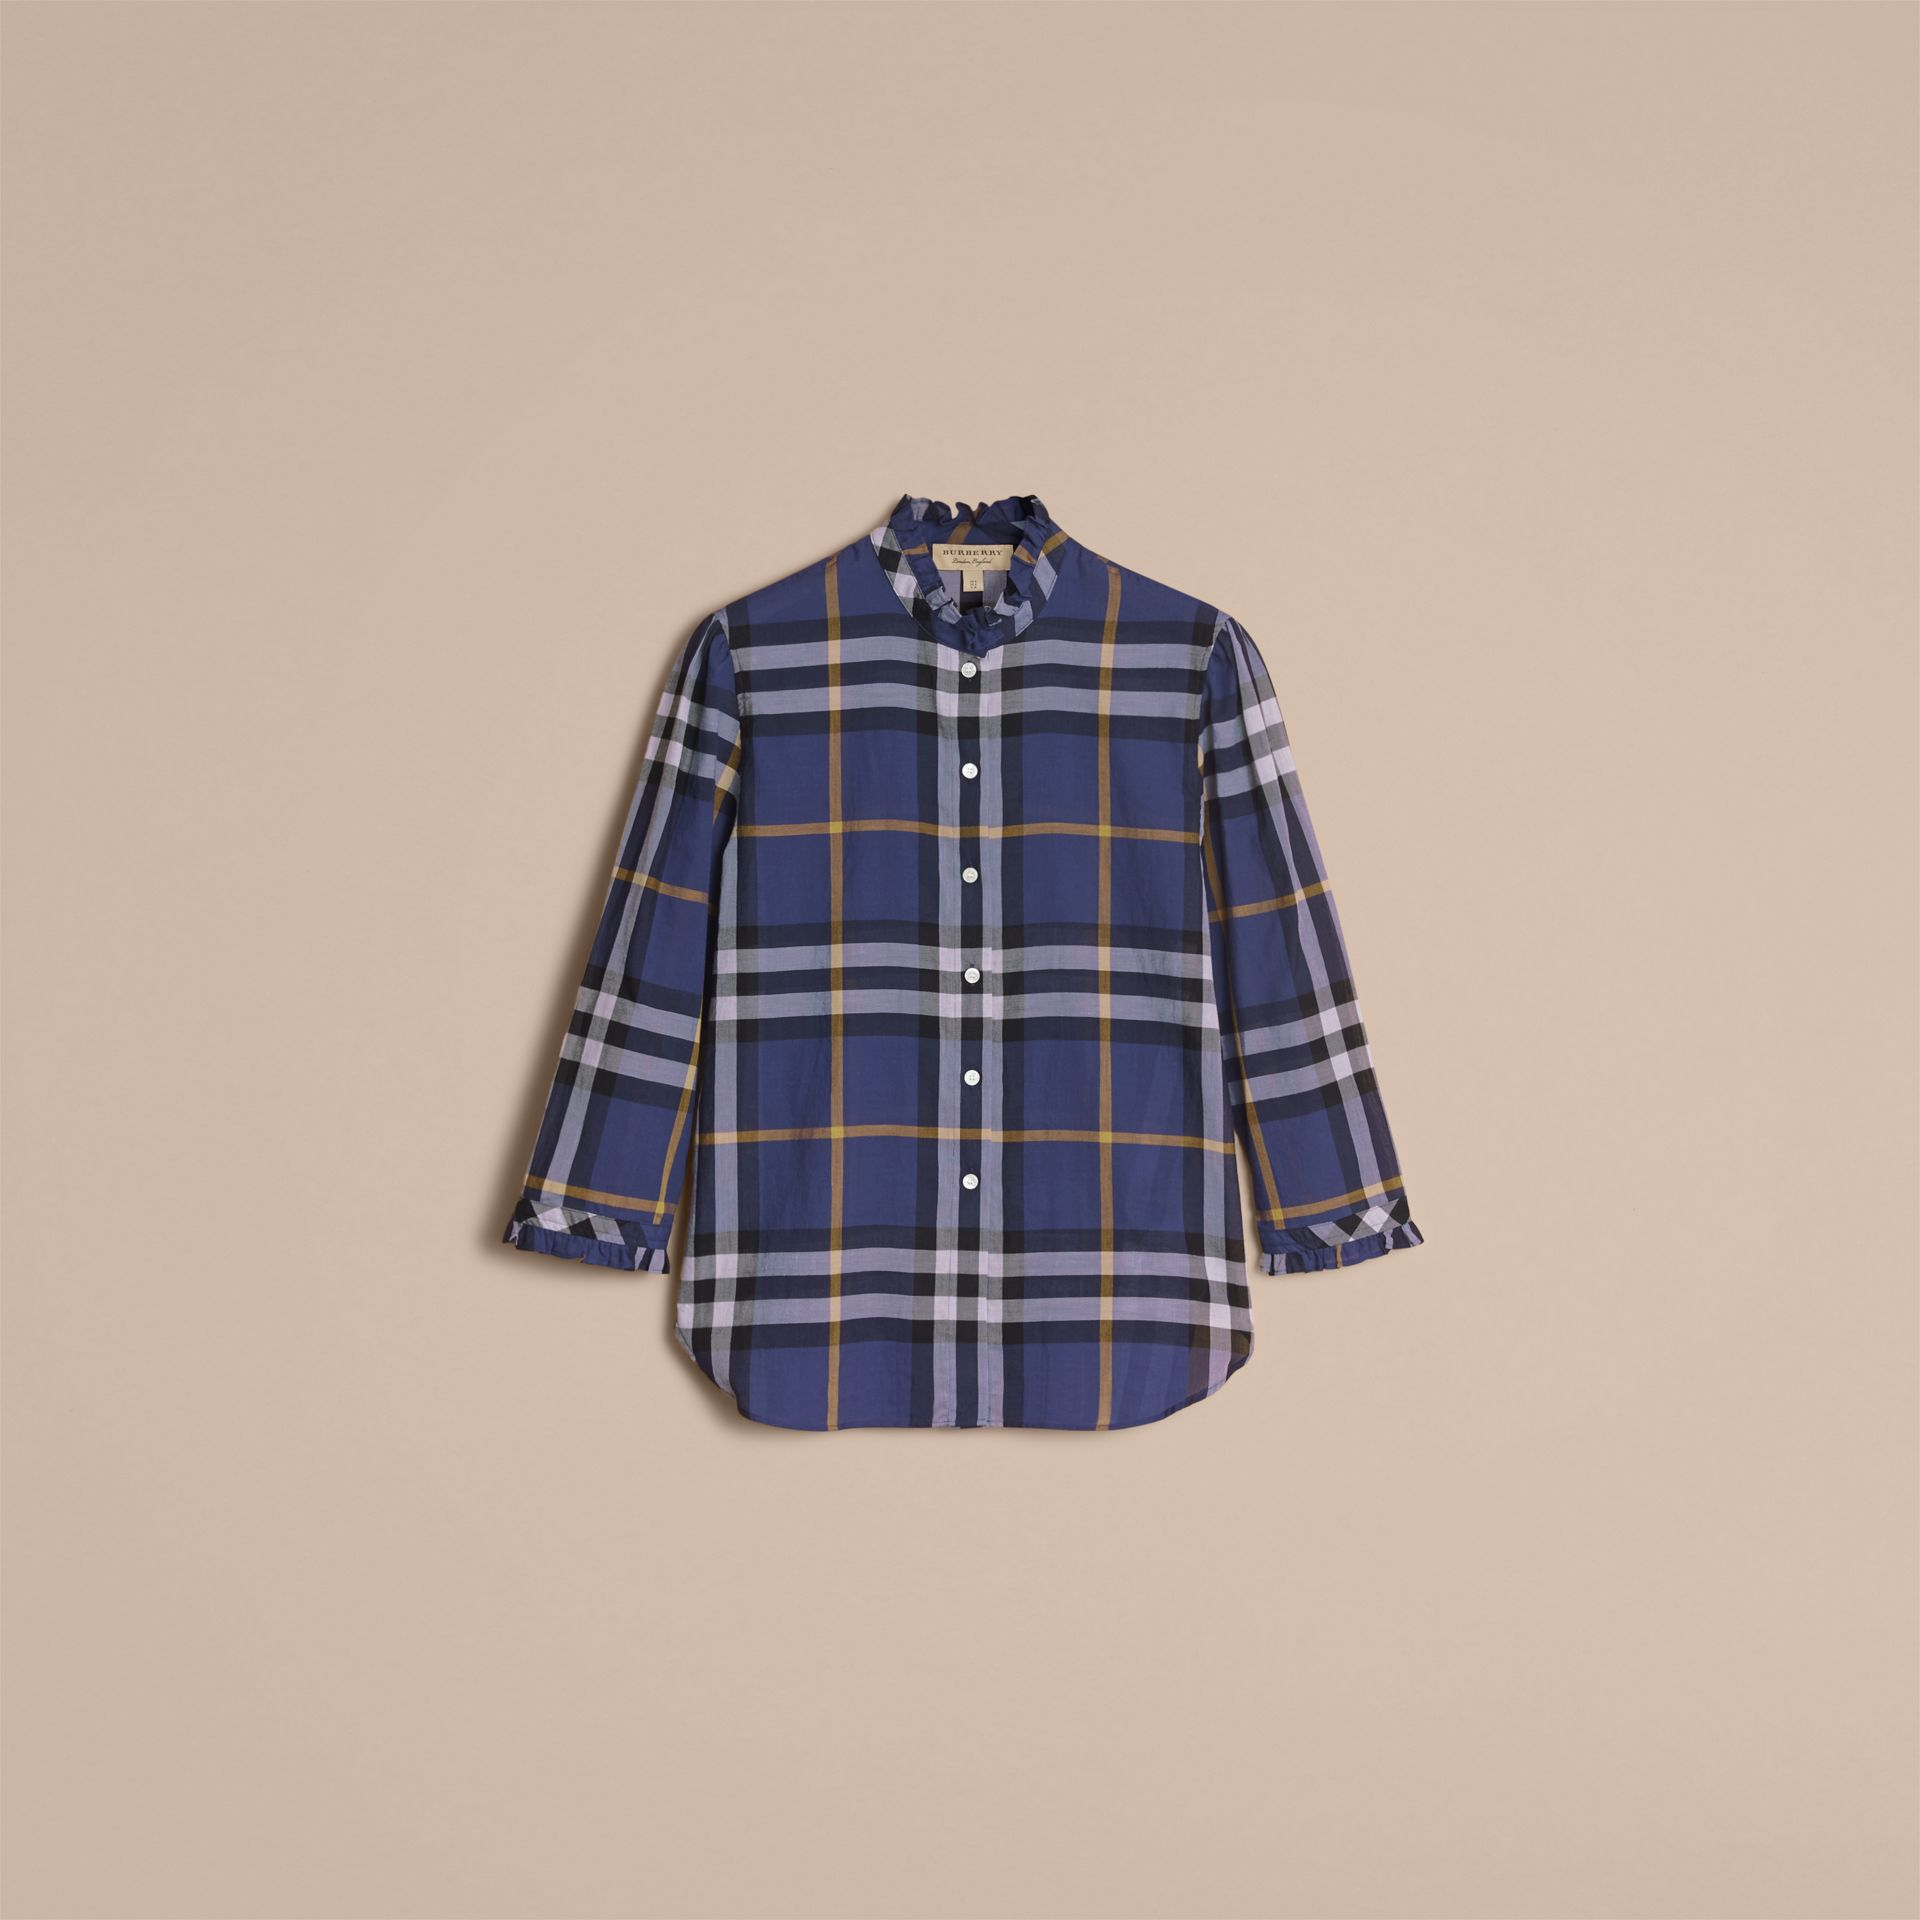 Ruffle Detail Check Cotton Shirt in Lapis Blue - Women | Burberry - gallery image 4